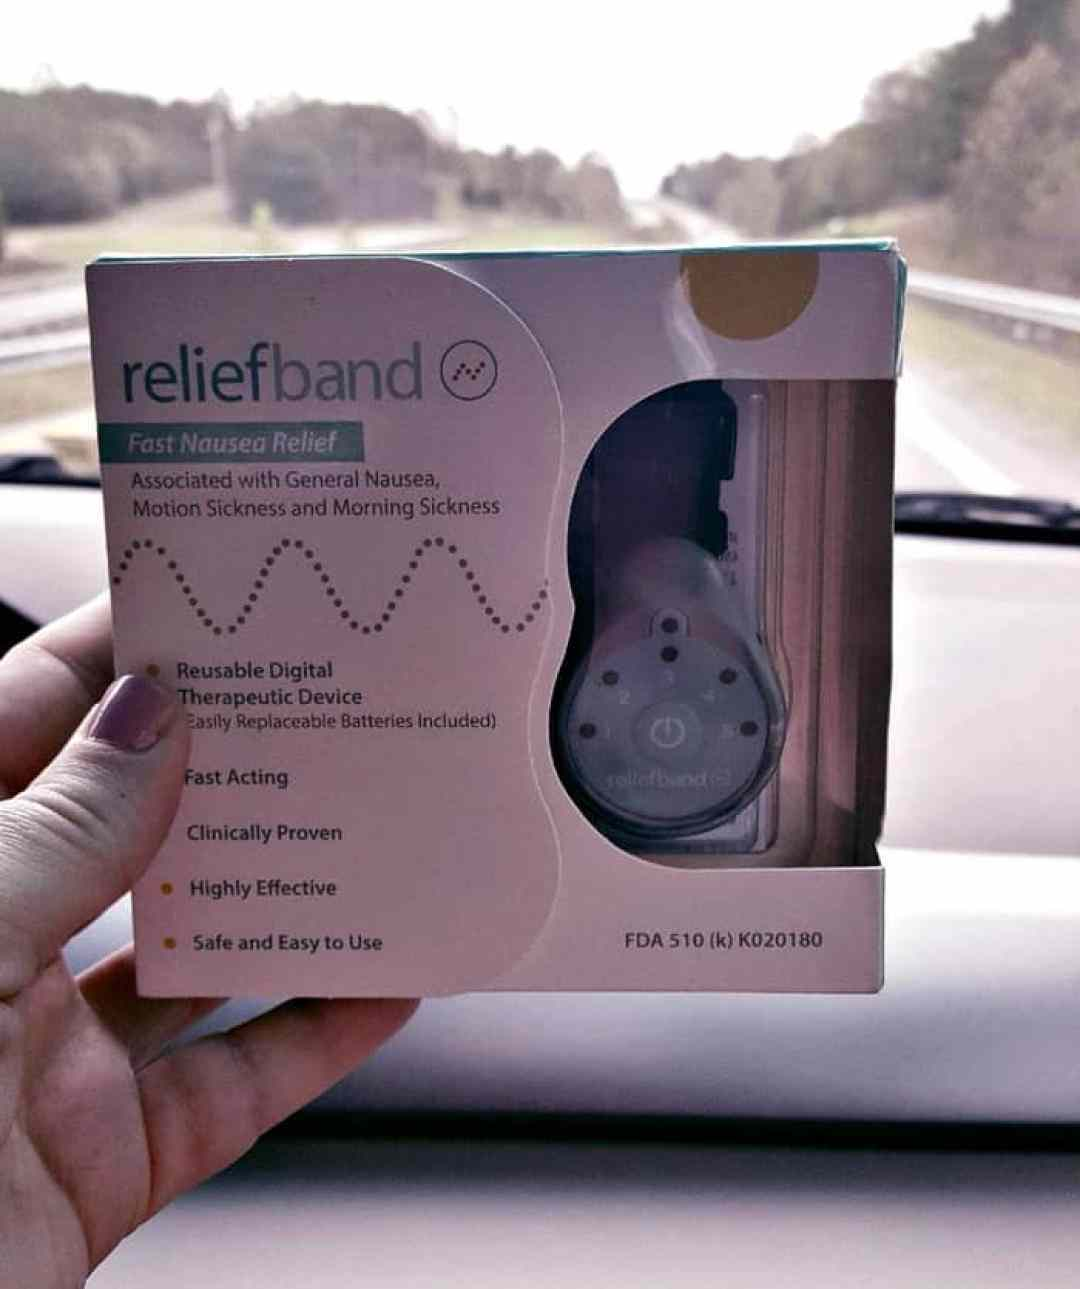 relief band in box